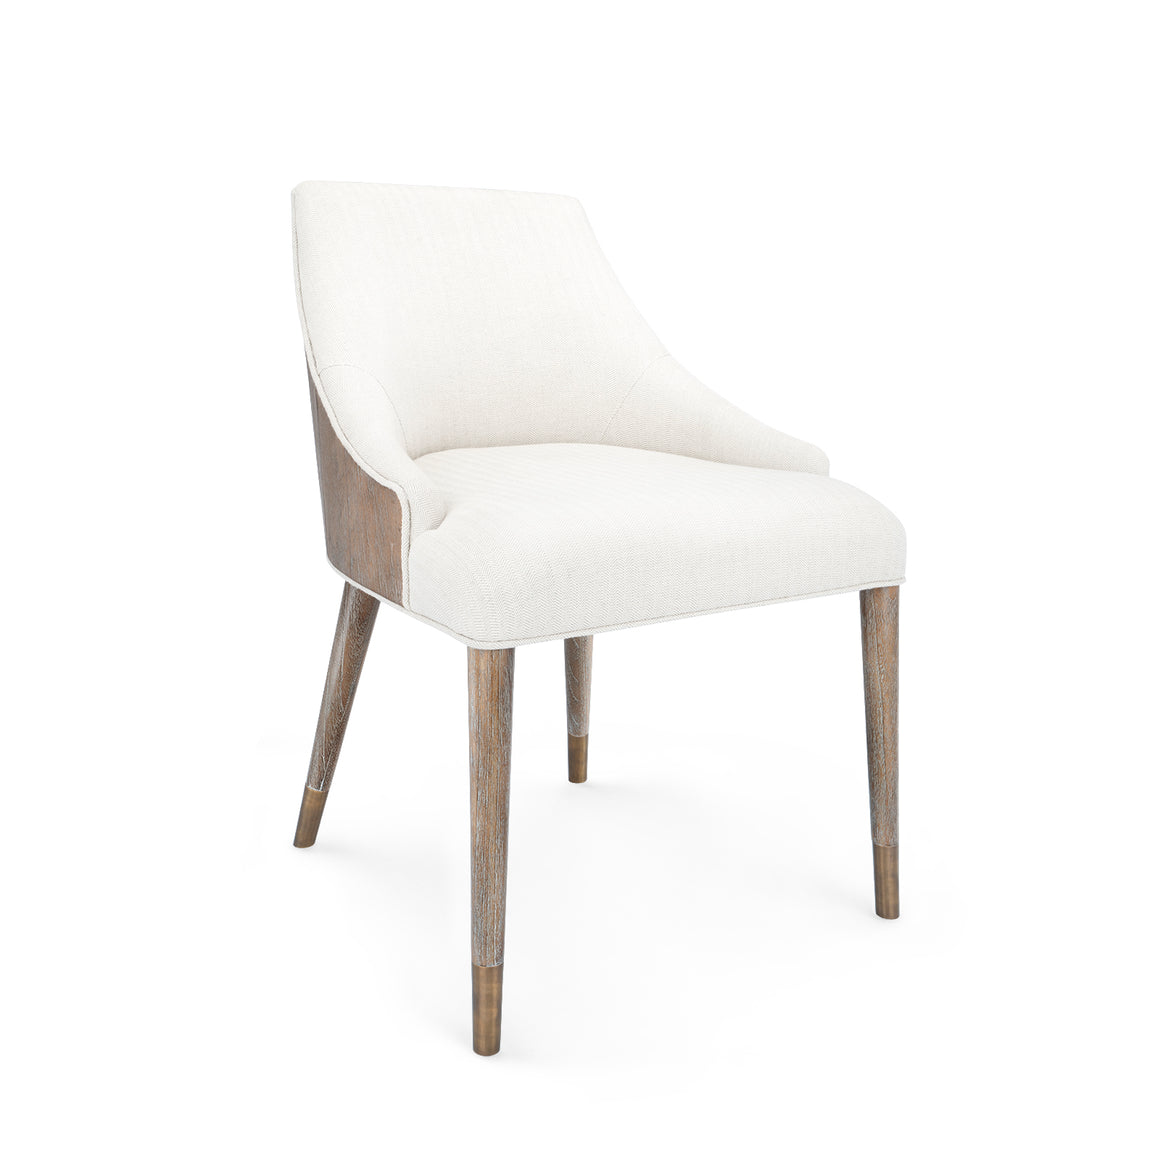 Bungalow 5 Orion Armchair, Natural